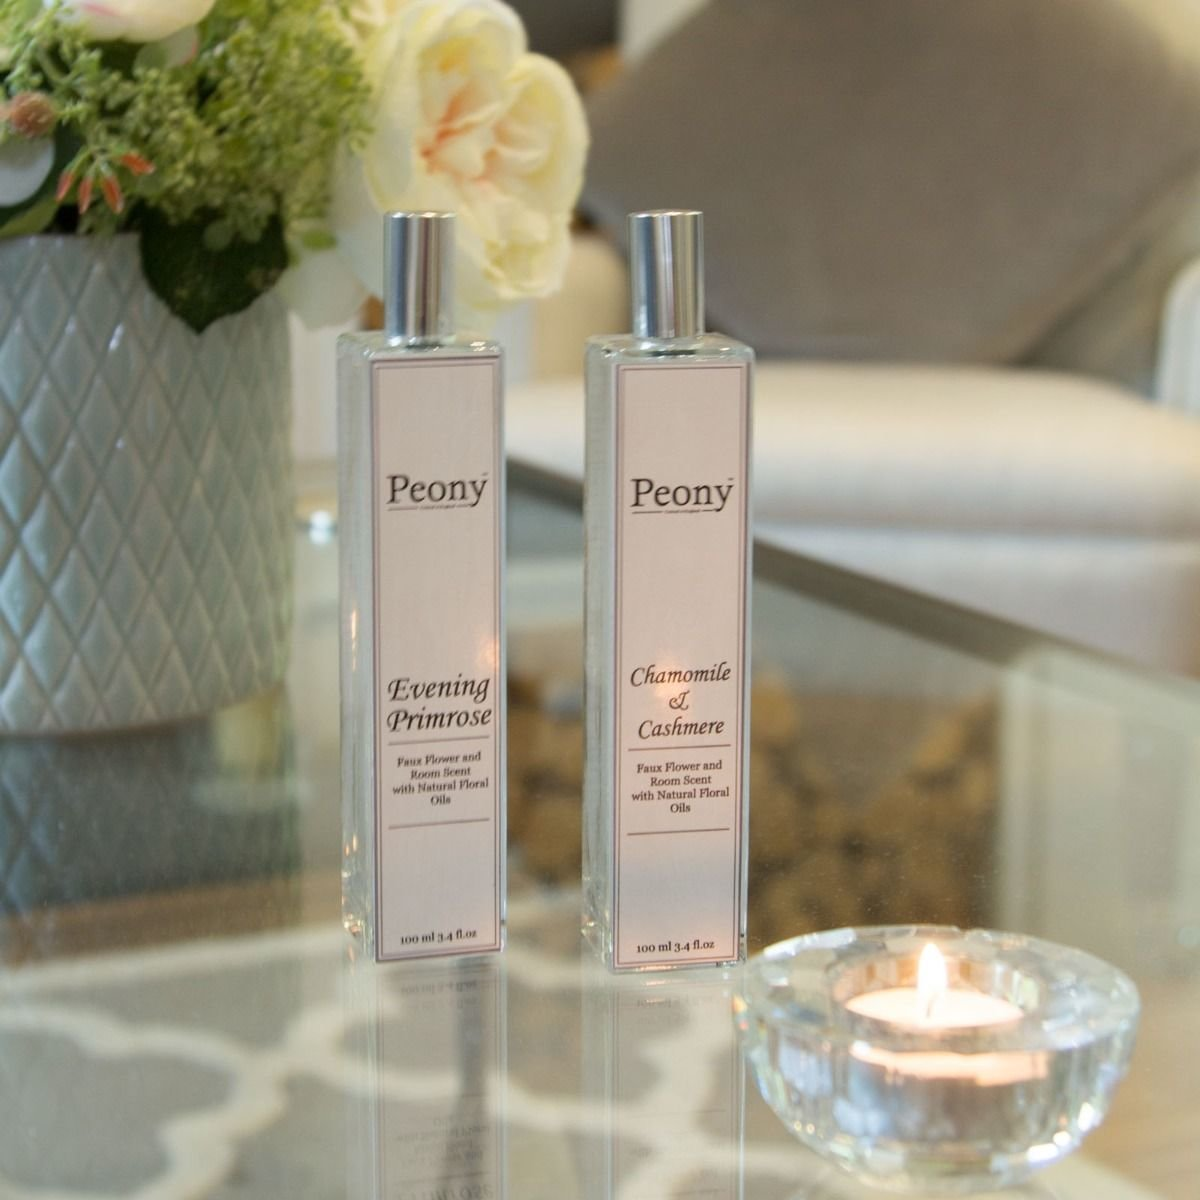 100ml Soothing Chamomile/Cashmere and Evening Primrose Oil Fragrance - pack of two